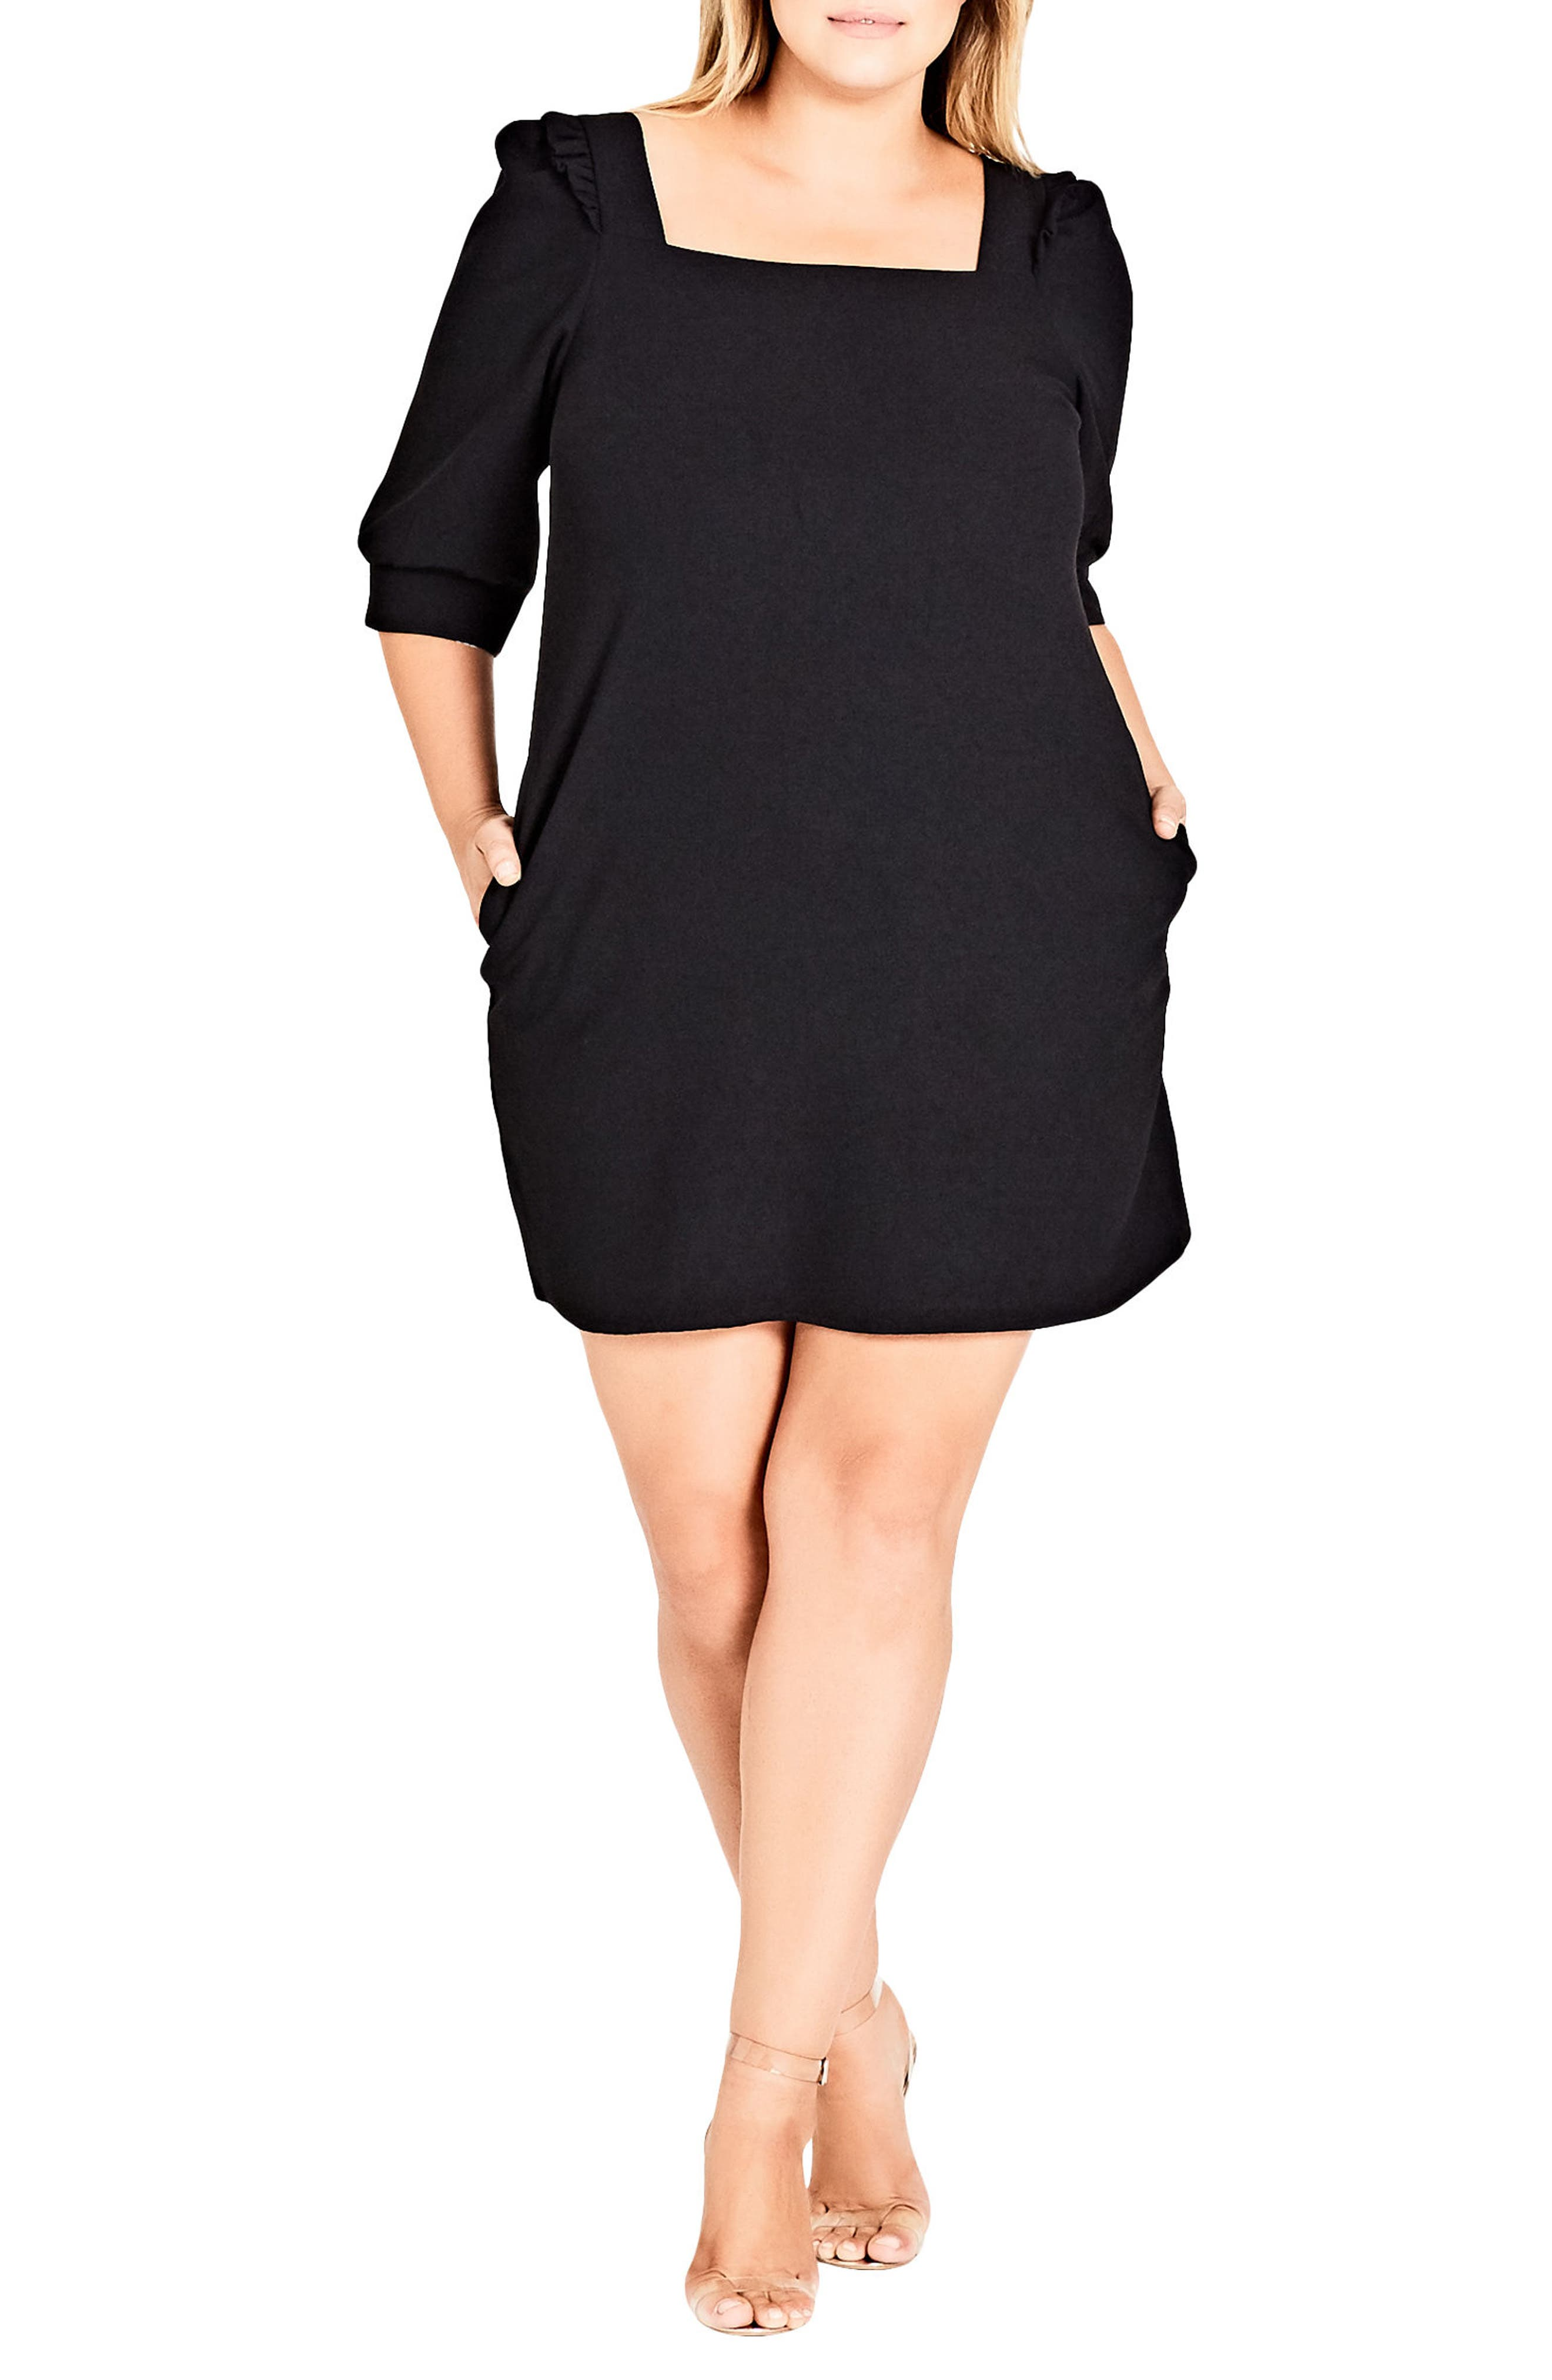 Darling Square Neck Dress,                         Main,                         color, Black